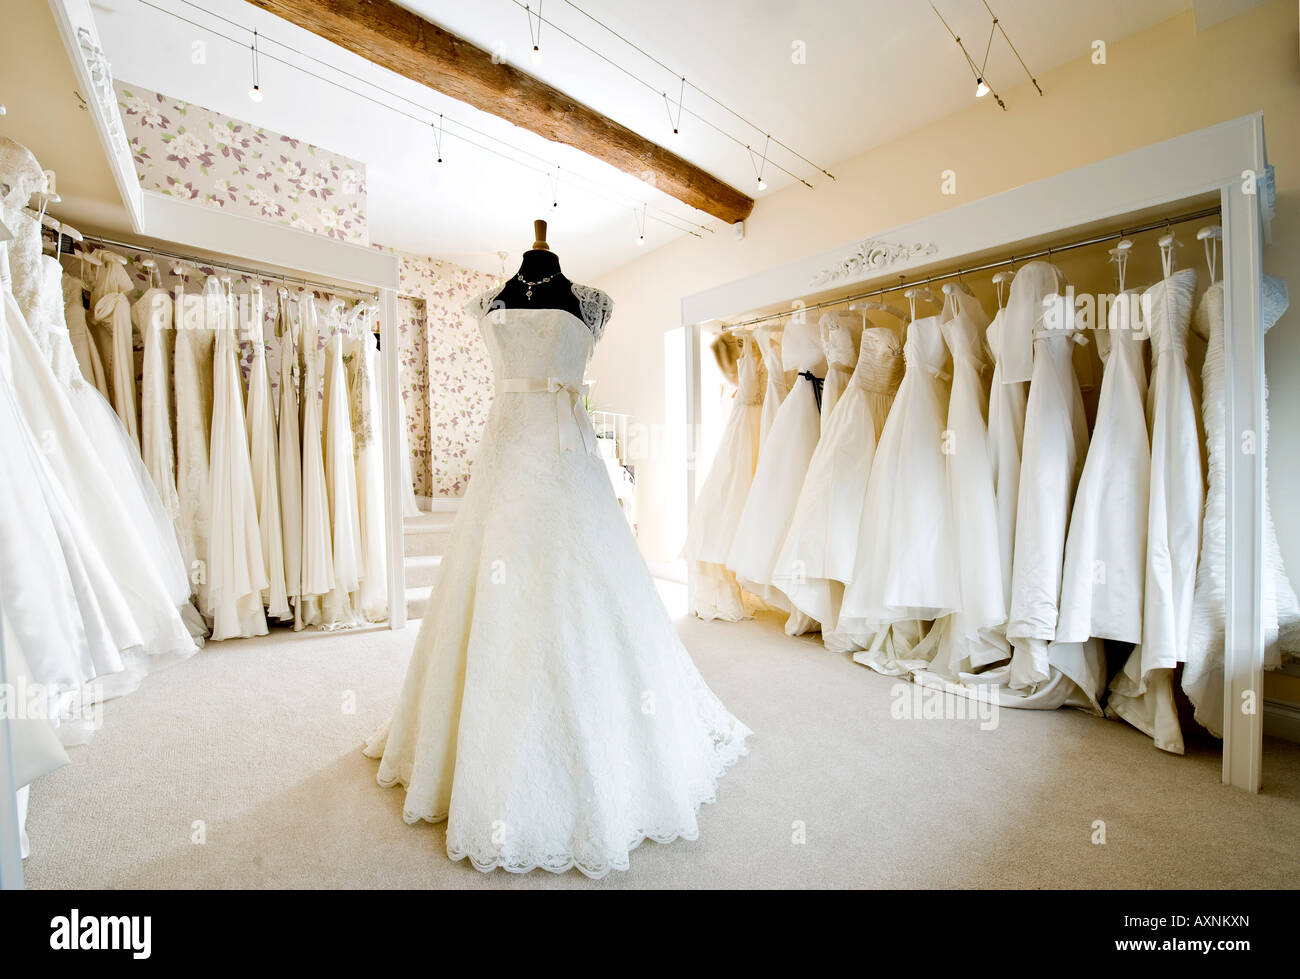 Interior of wedding dress gown in bridal boutique shop for Wedding dress shops in oklahoma city